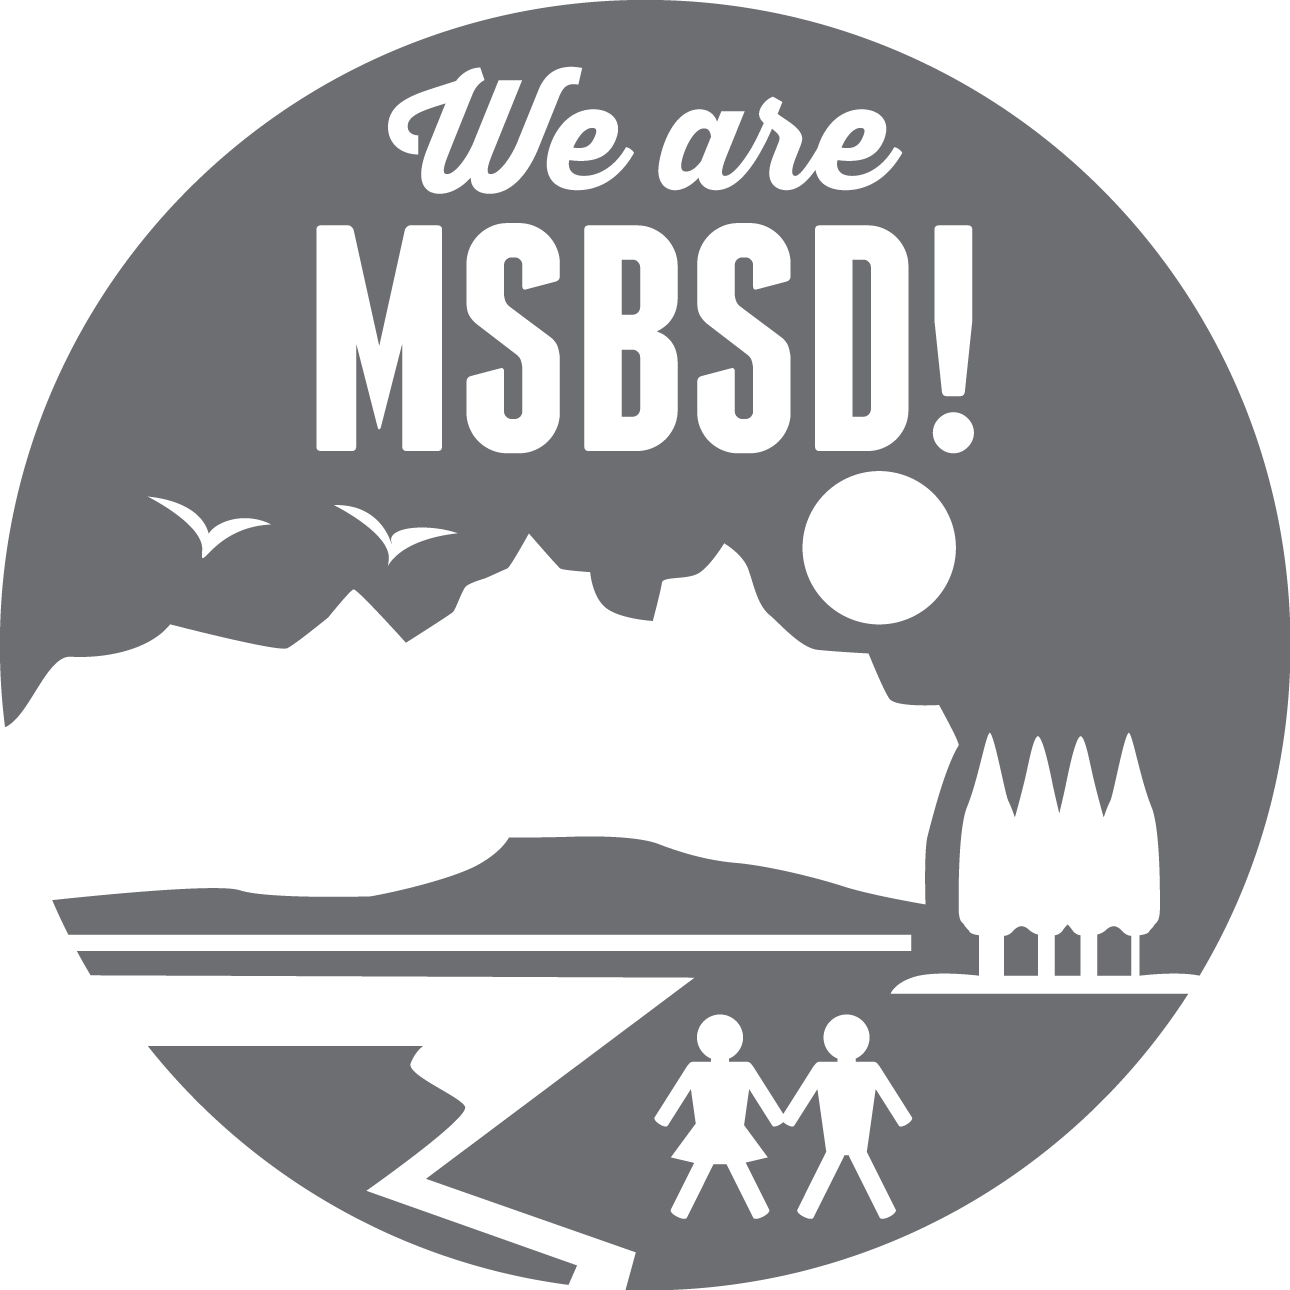 We Are MSBSD